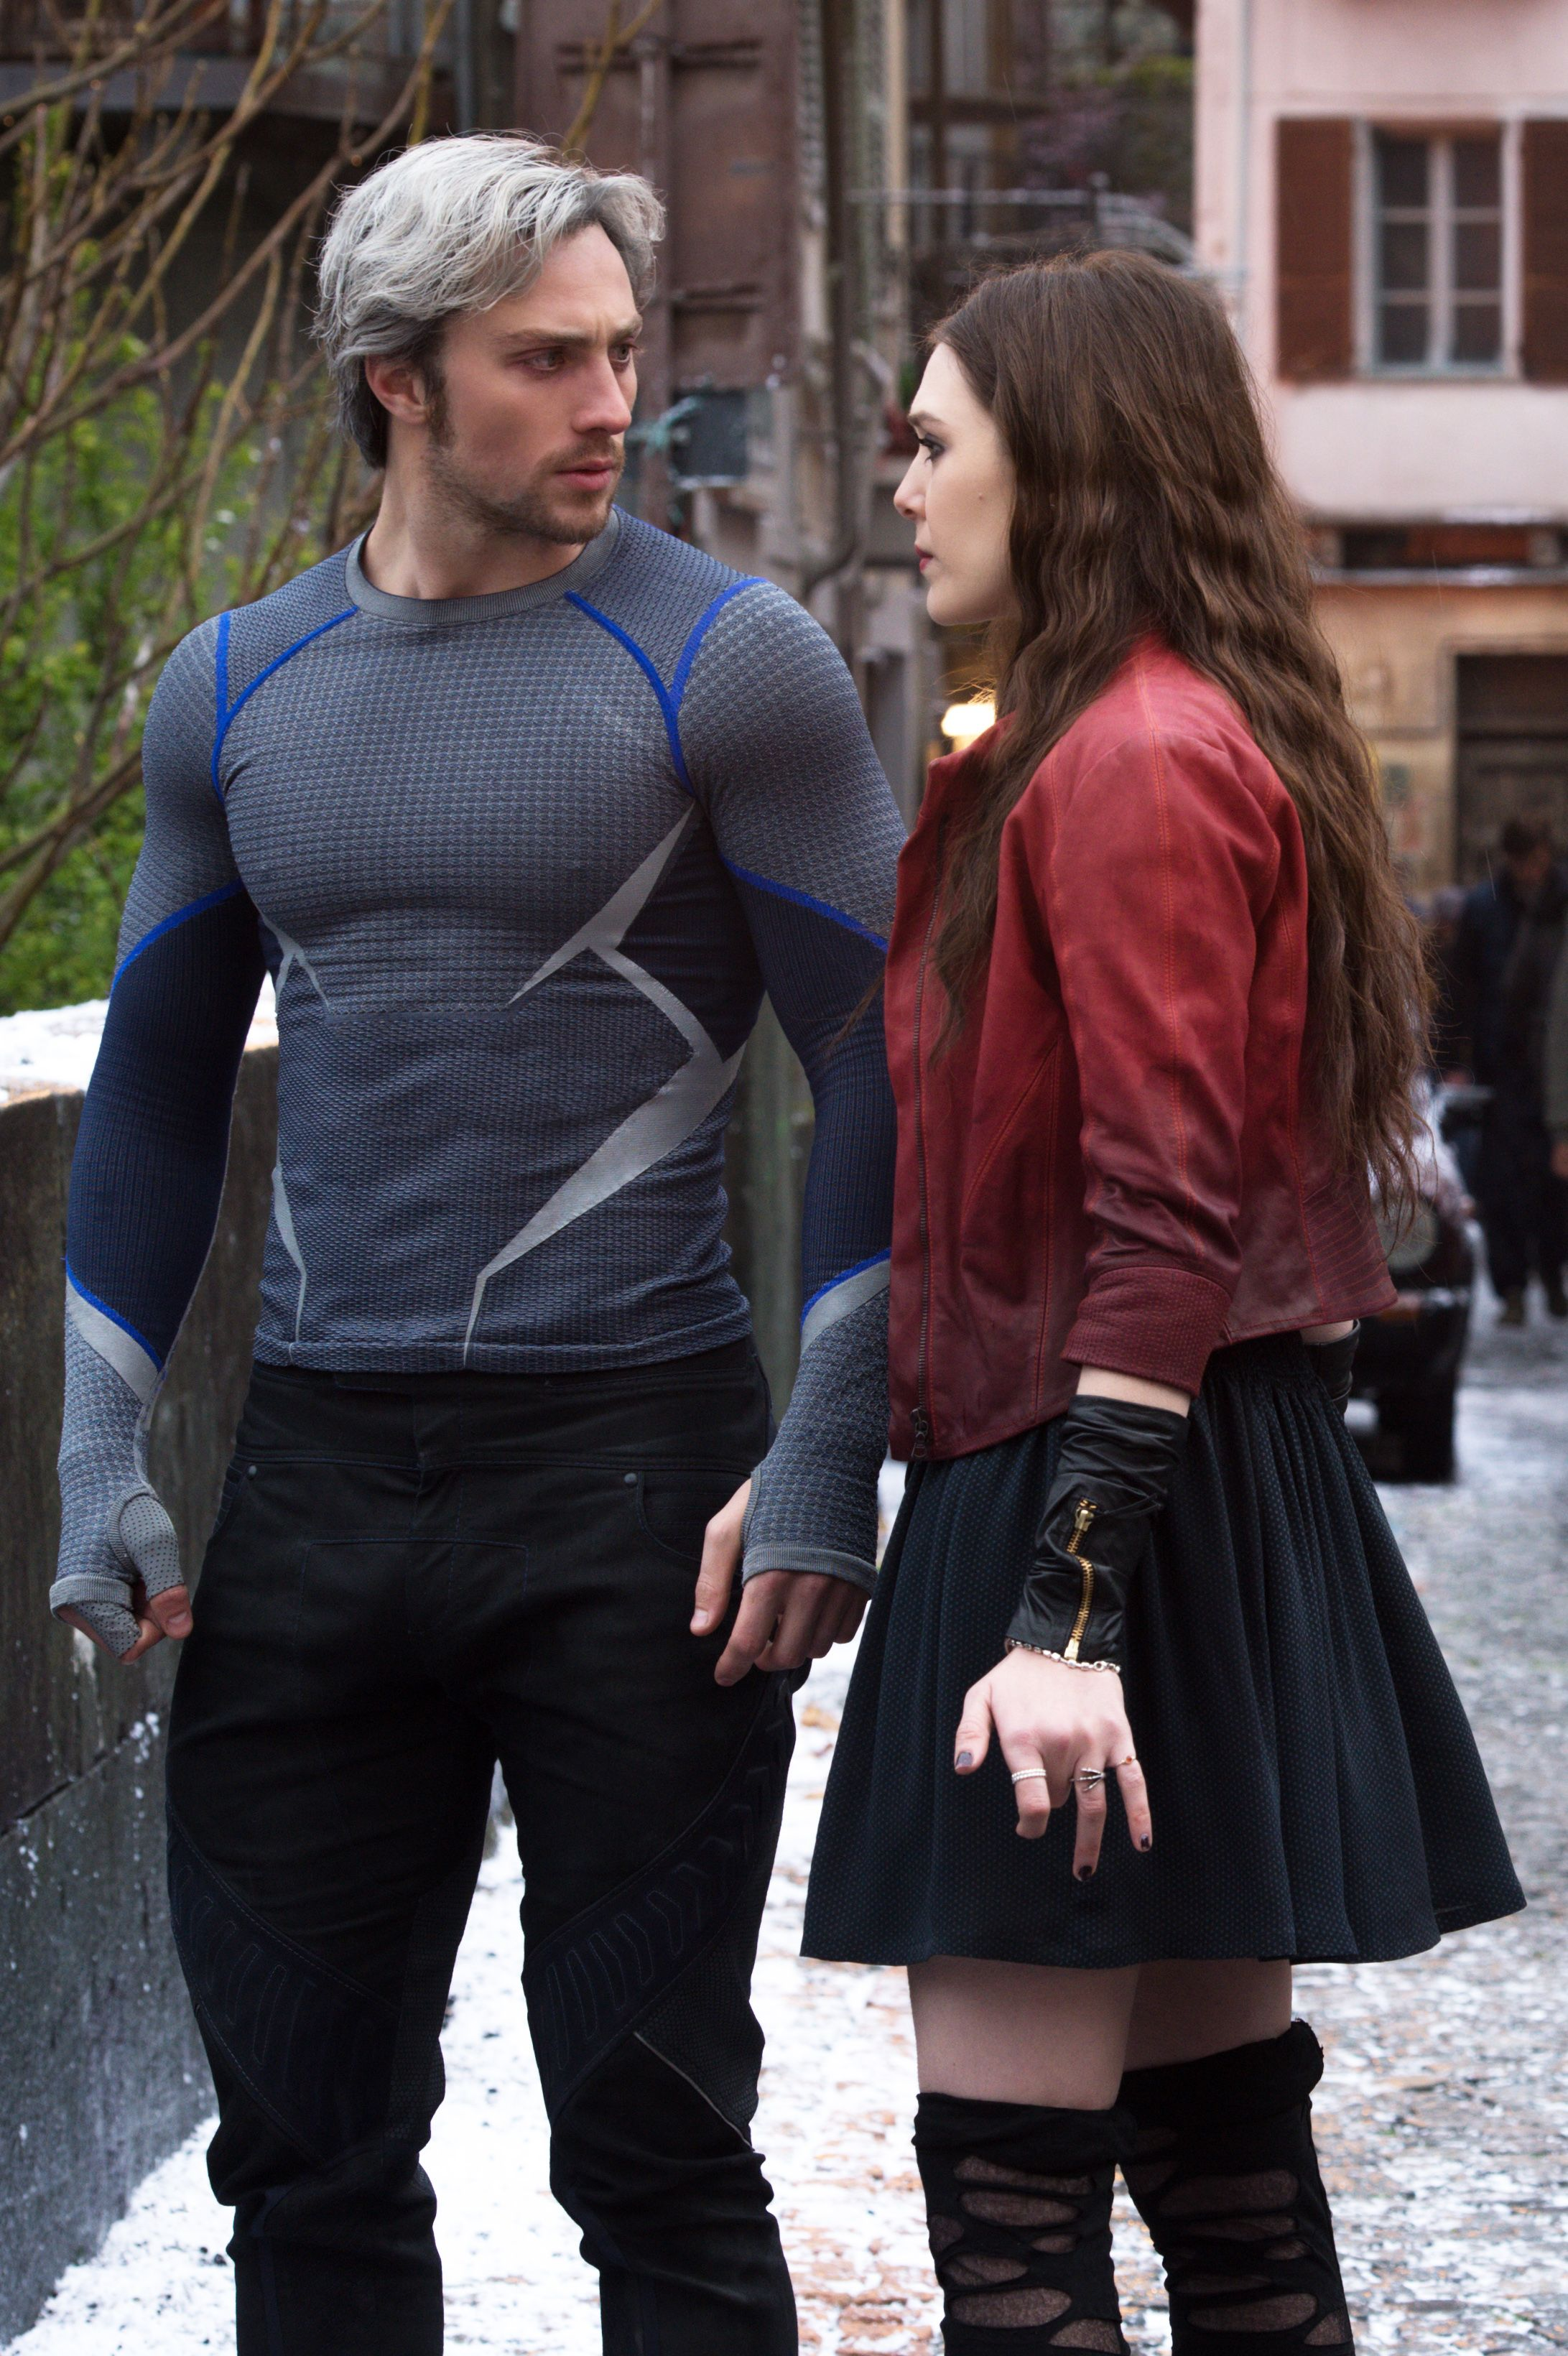 Avengers Age Of Ultron The Maximoff Twins Pietro And Wanda